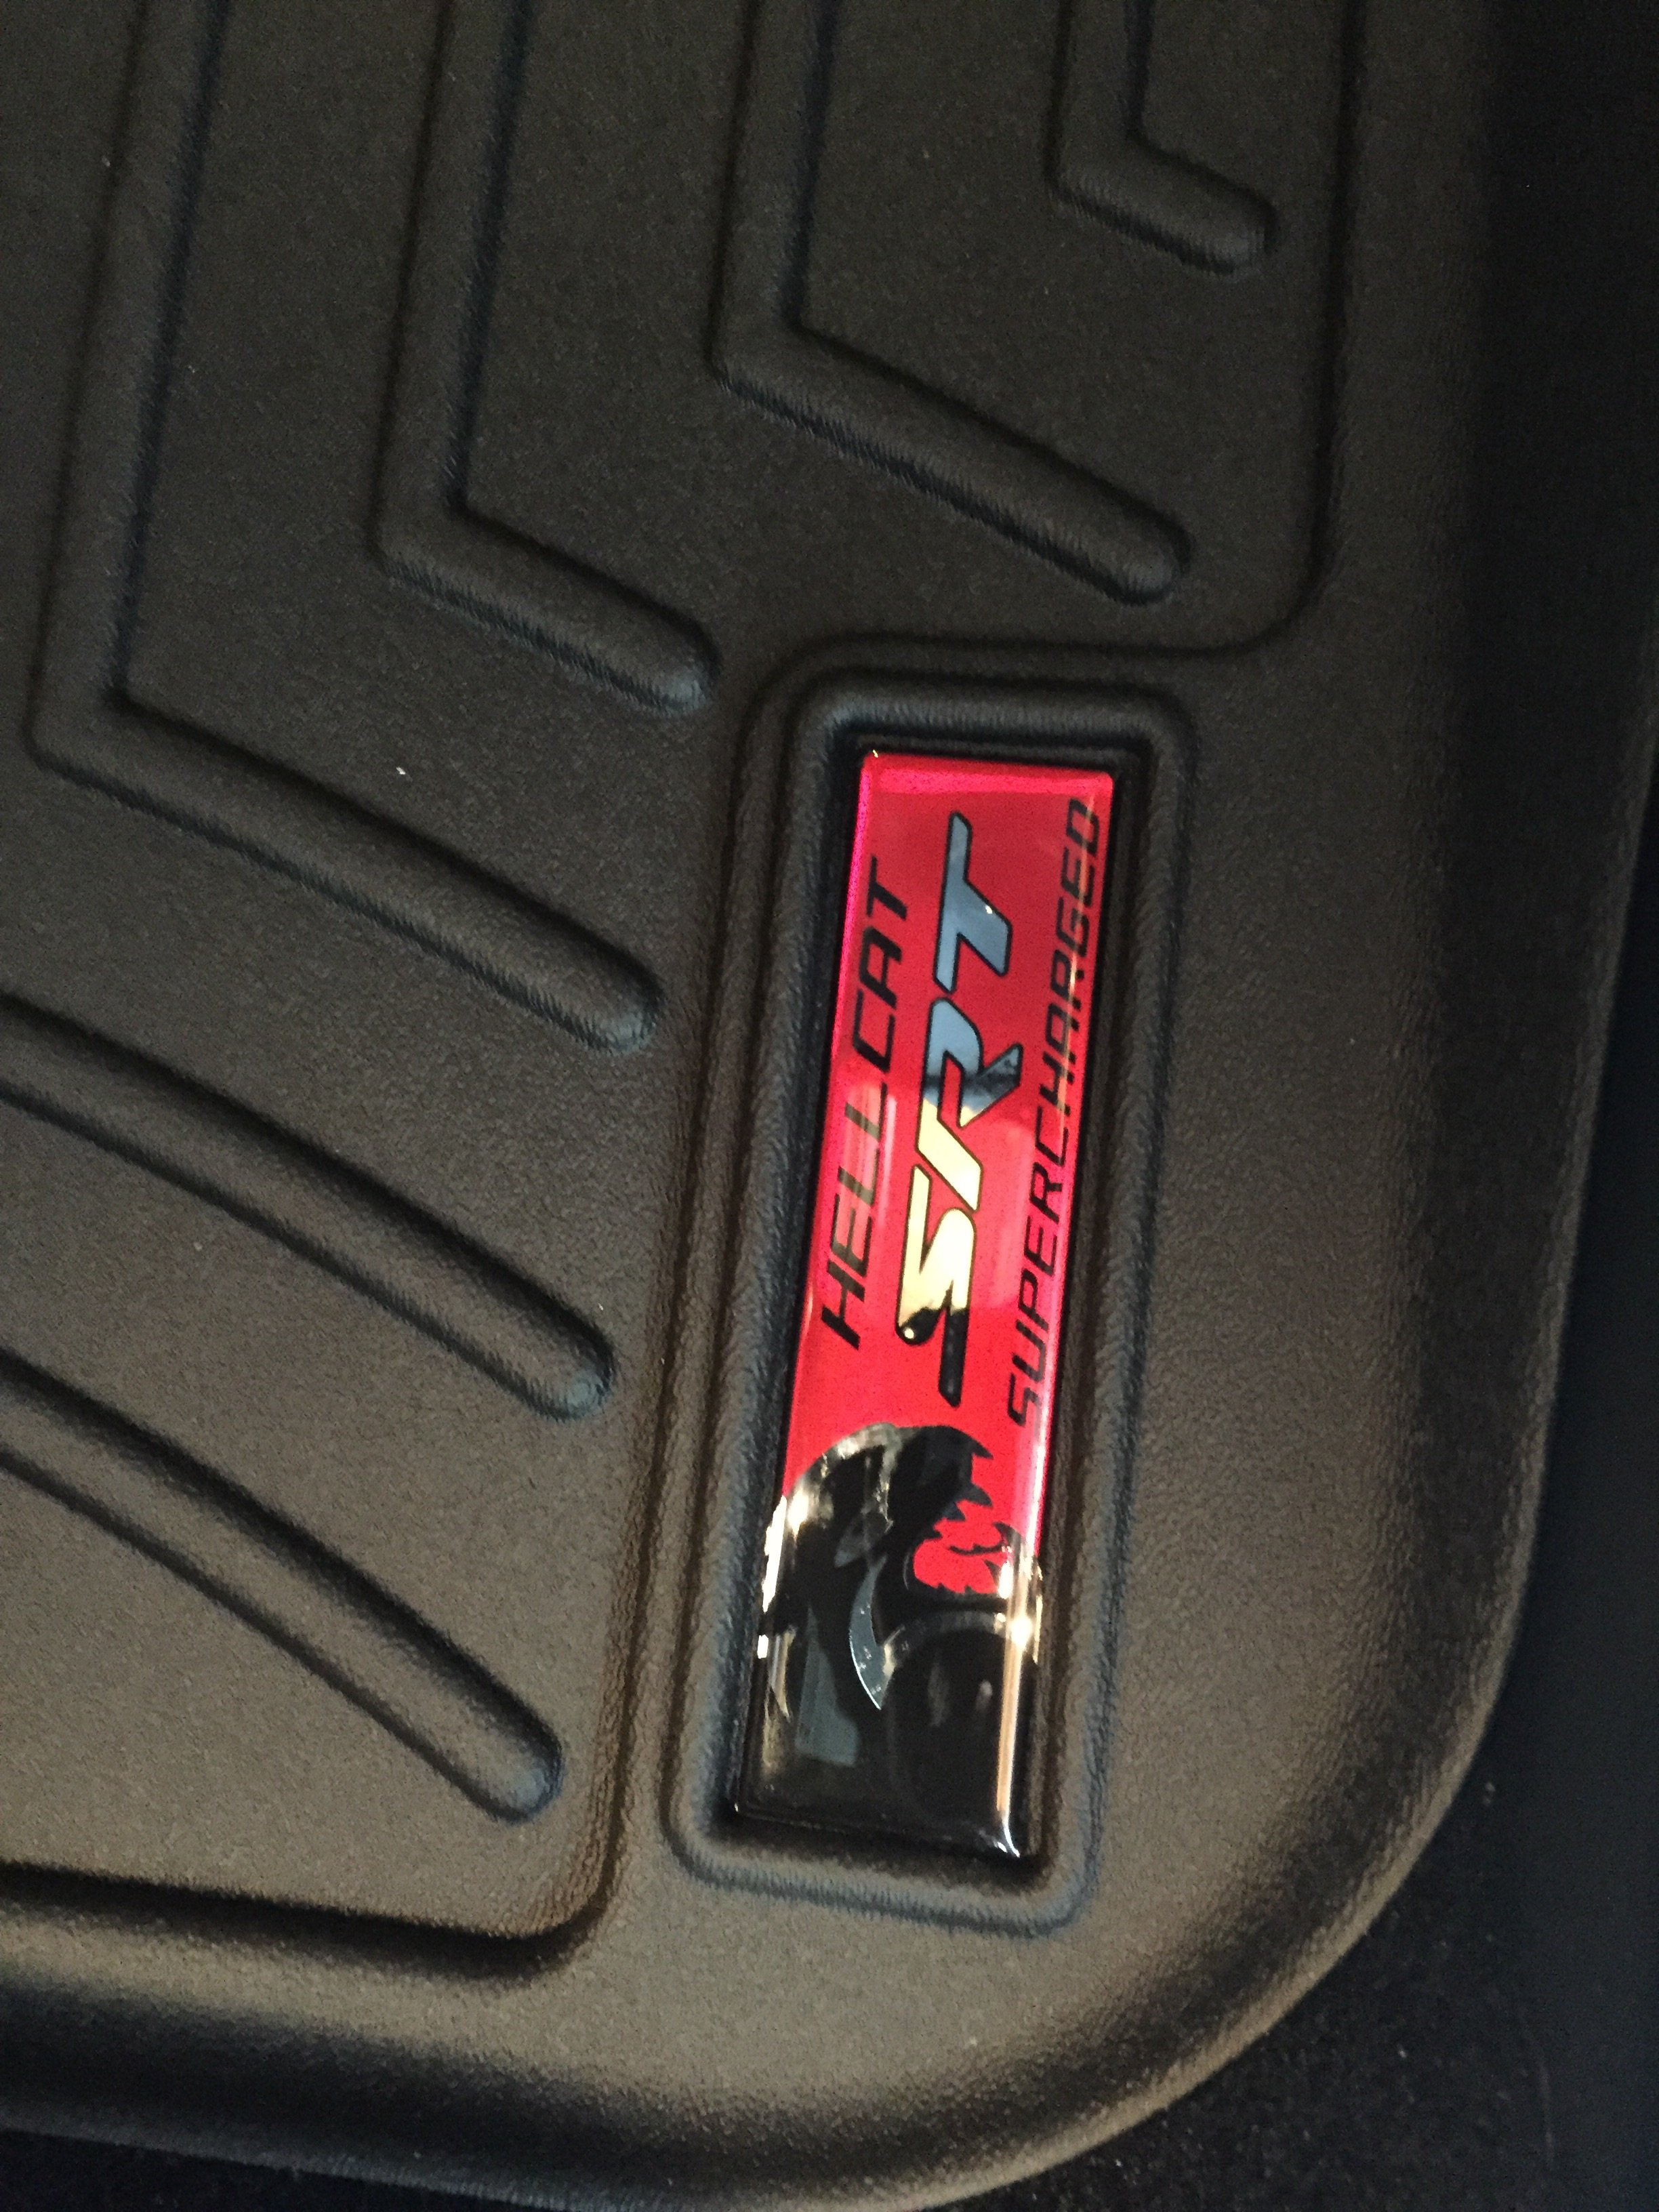 Dodge Charger Srt Hellcat >> What floor mats did you get? Husky or Weathertech? | SRT Hellcat Forum